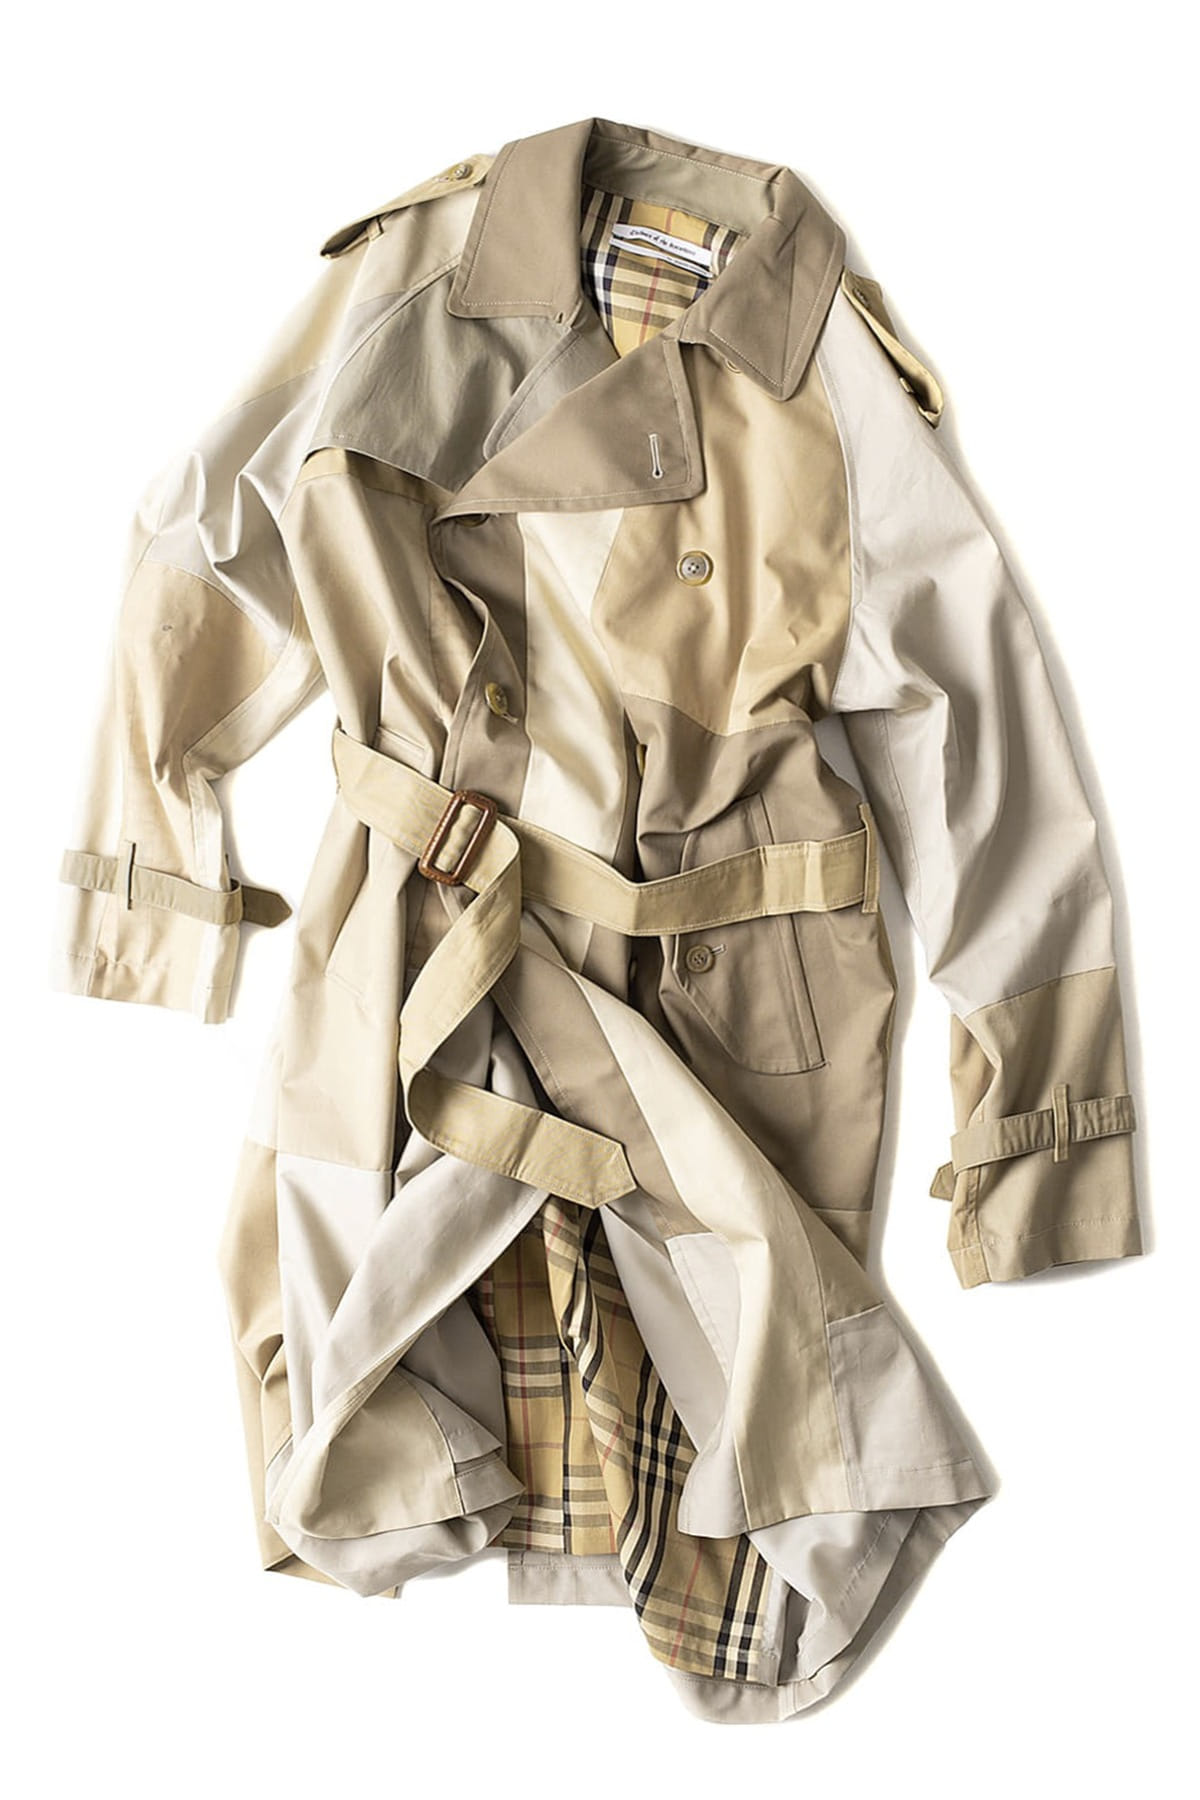 Children of the discordance : Vintage Patch Trench Coat (B)